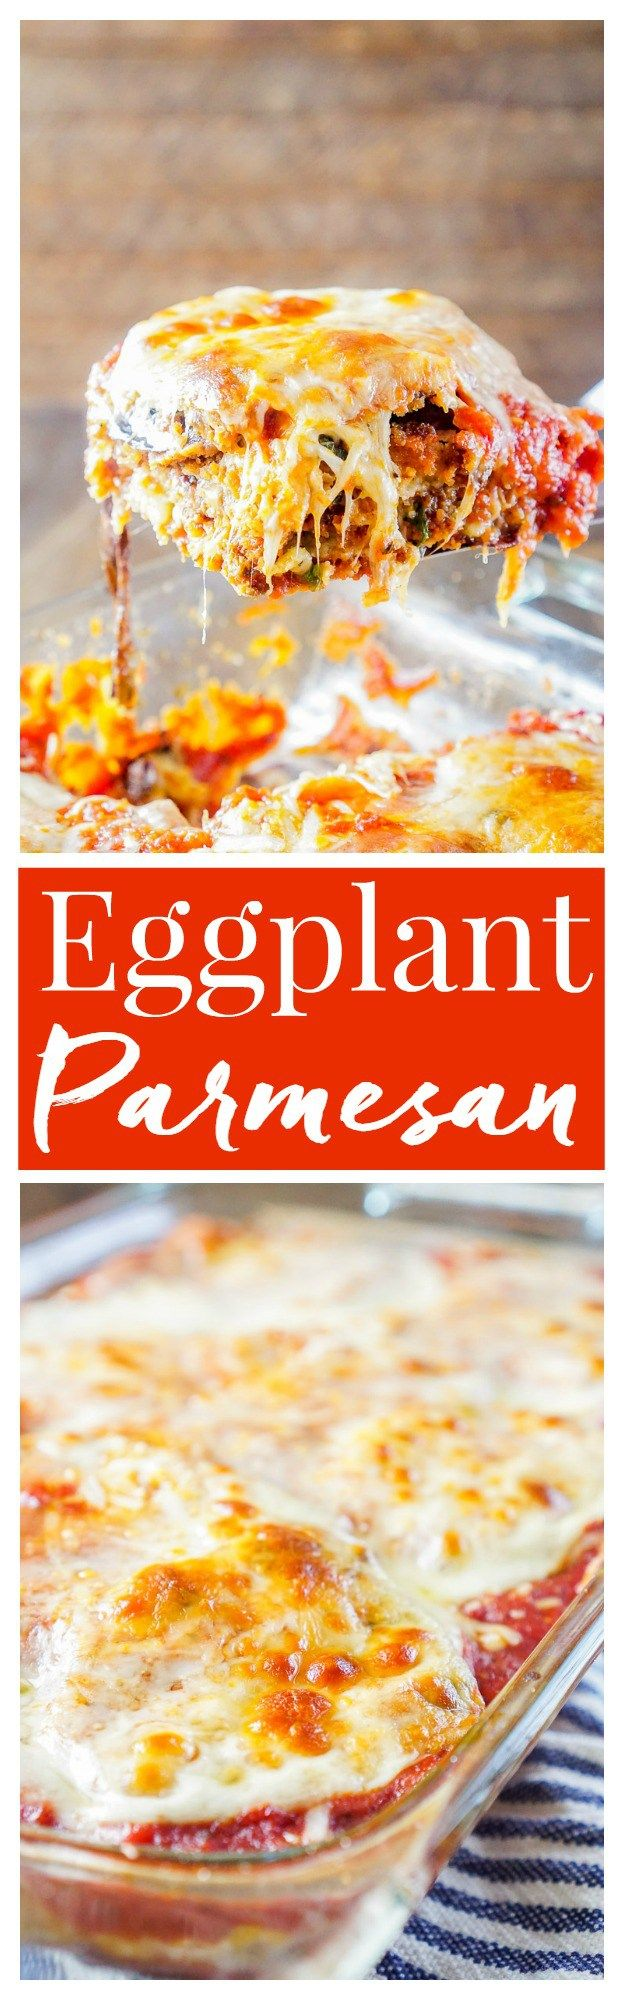 This Eggplant Parmesan is made with layers of eggplant, cheese, sauce, and memories. An easy and mouthwatering Italian classic you'll make again and again!